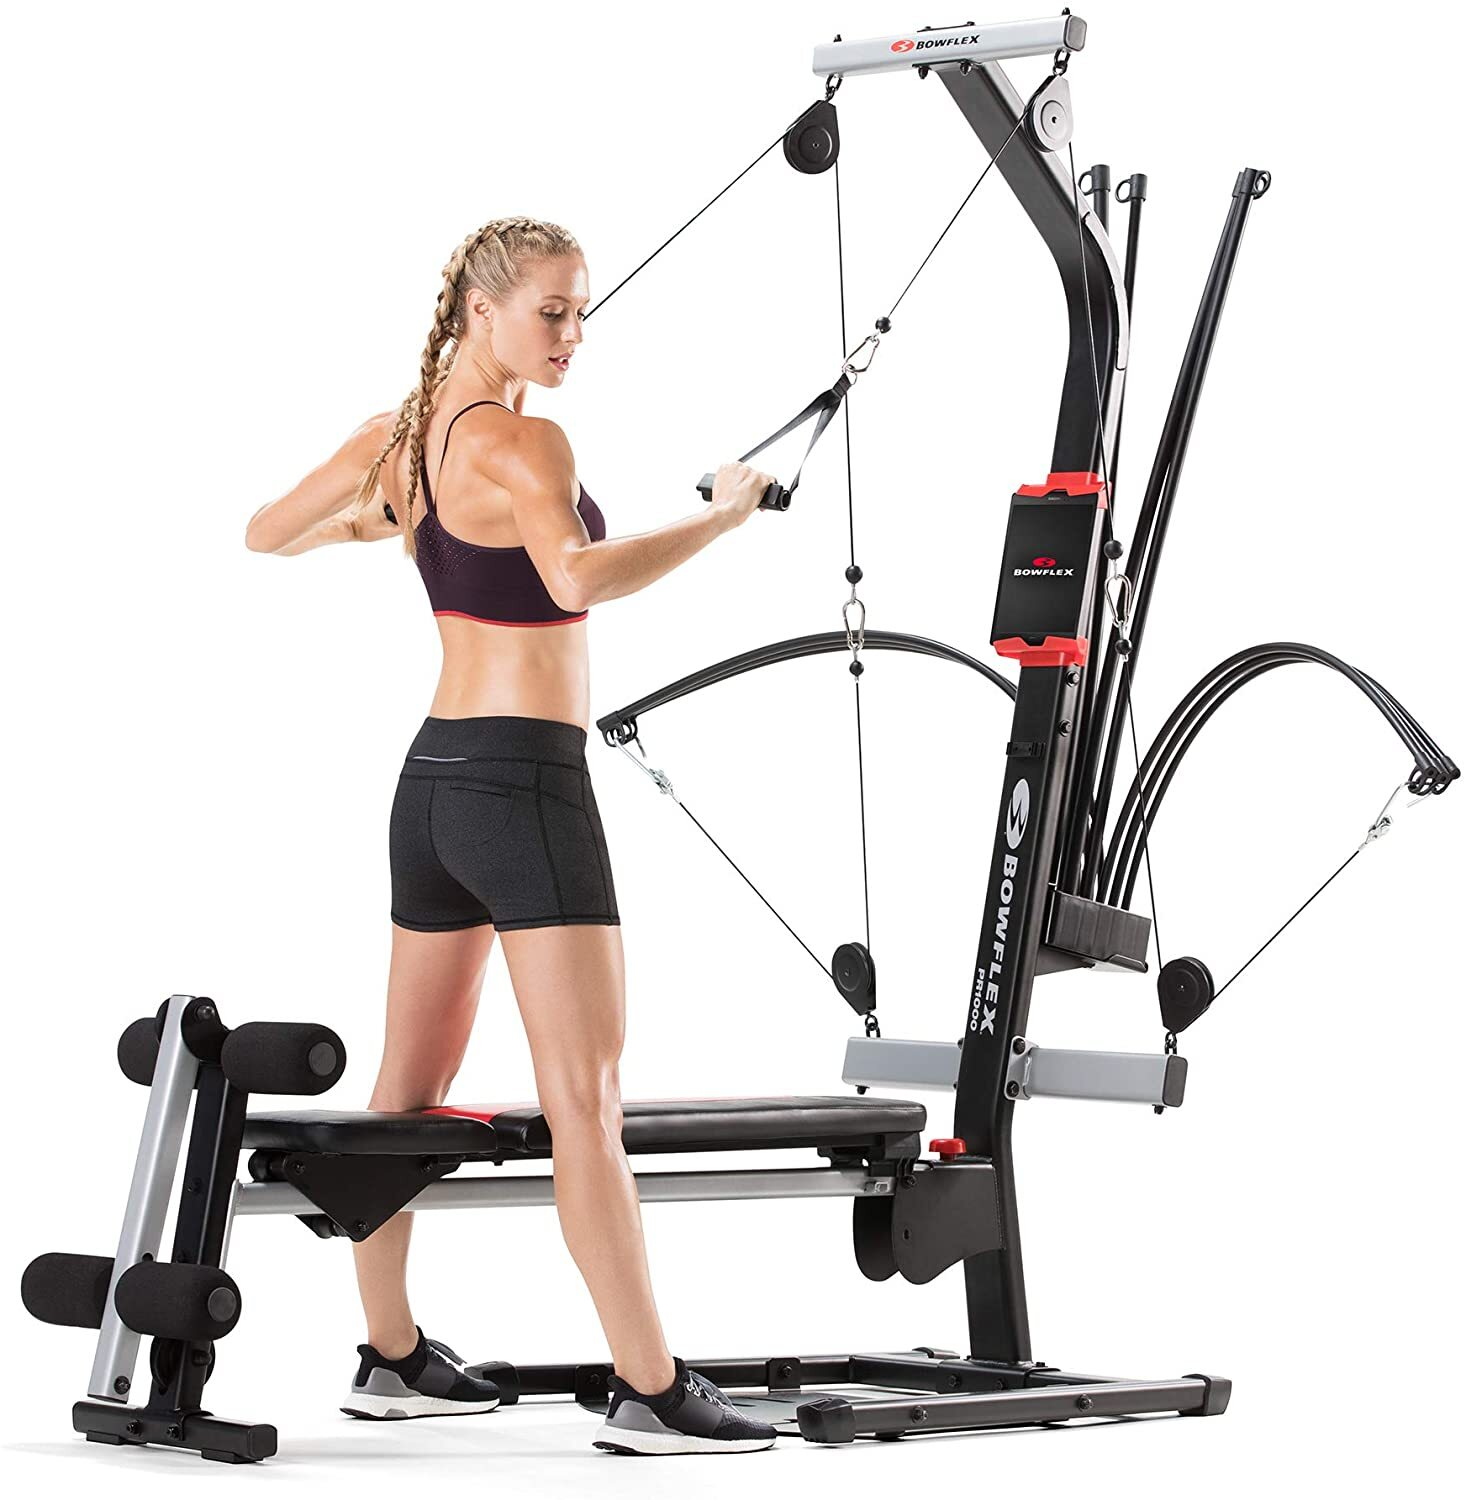 Remarkable Bowflex Pr1000 Home Gym News Prices At Priceplow Ocoug Best Dining Table And Chair Ideas Images Ocougorg